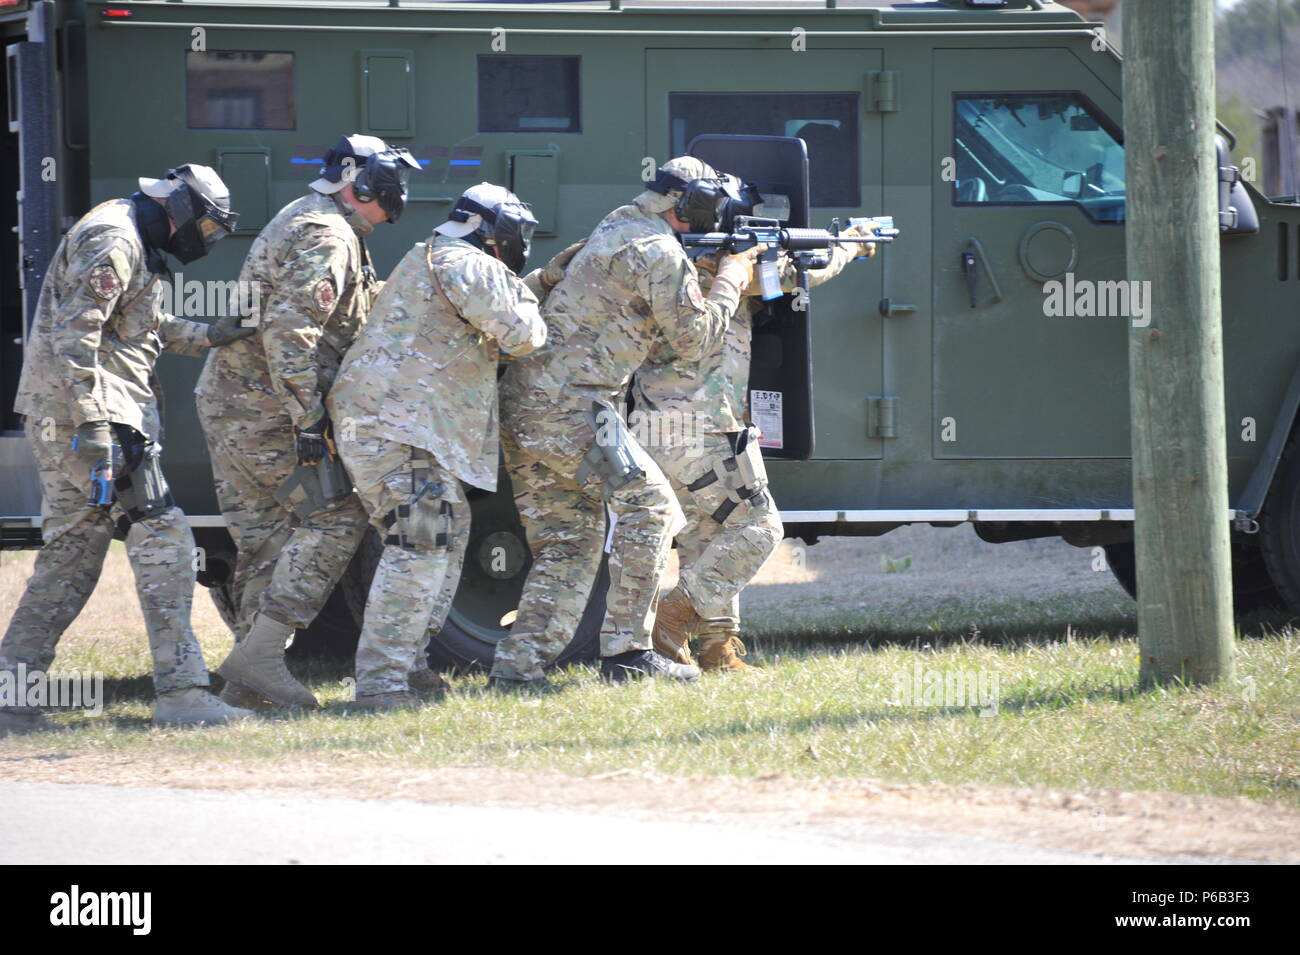 Members of the Rock County Sheriff's tactical team practice urban